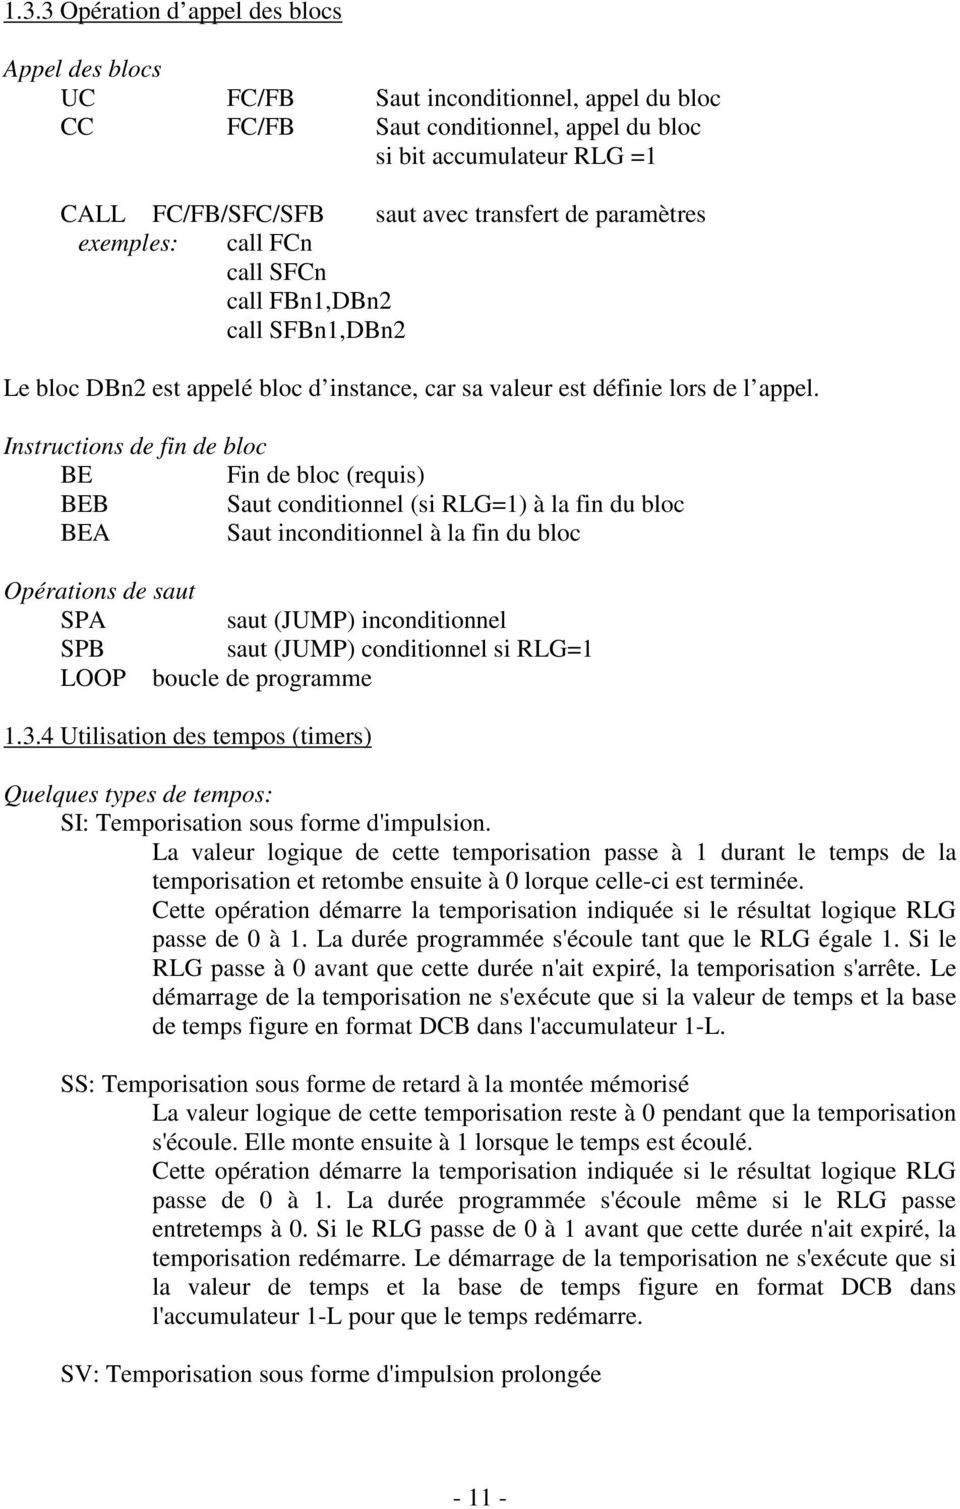 Instructions de fin de bloc BE Fin de bloc (requis) BEB Saut conditionnel (si RLG=1) à la fin du bloc BEA Saut inconditionnel à la fin du bloc Opérations de saut SPA saut (JUMP) inconditionnel SPB